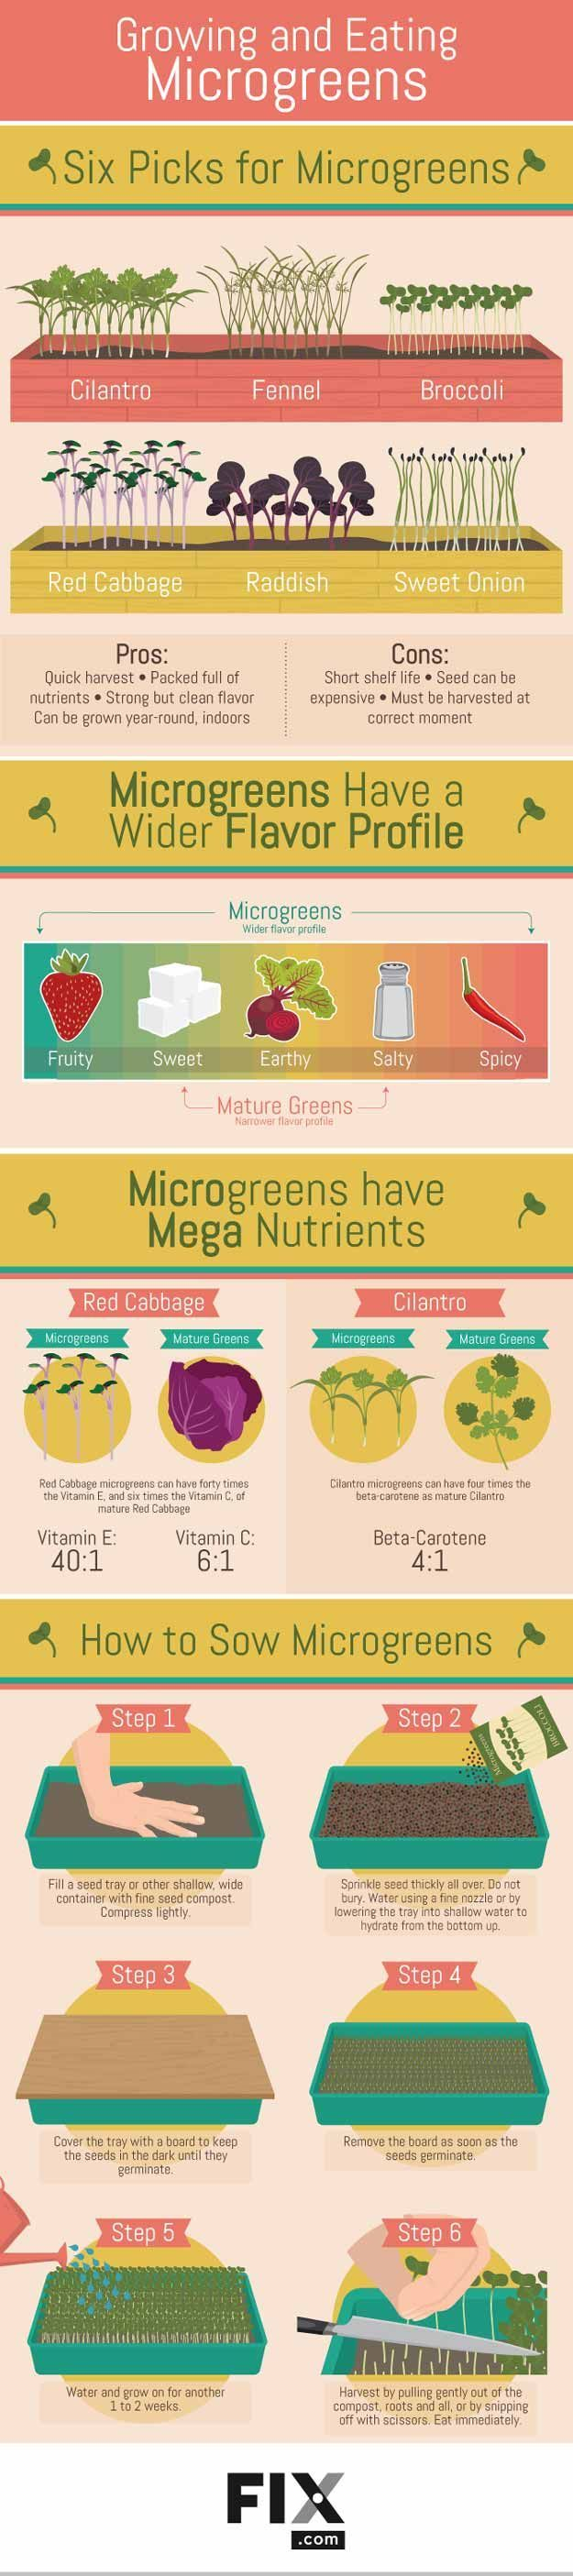 Microgreens Growing Guide For Homesteading   How To Plant And Harvest Microgreens - Gardening Tips And Ideas For Beginners And Expert Gardeners by Pioneer Settler at https://homesteading.com/need-know-microgreens/